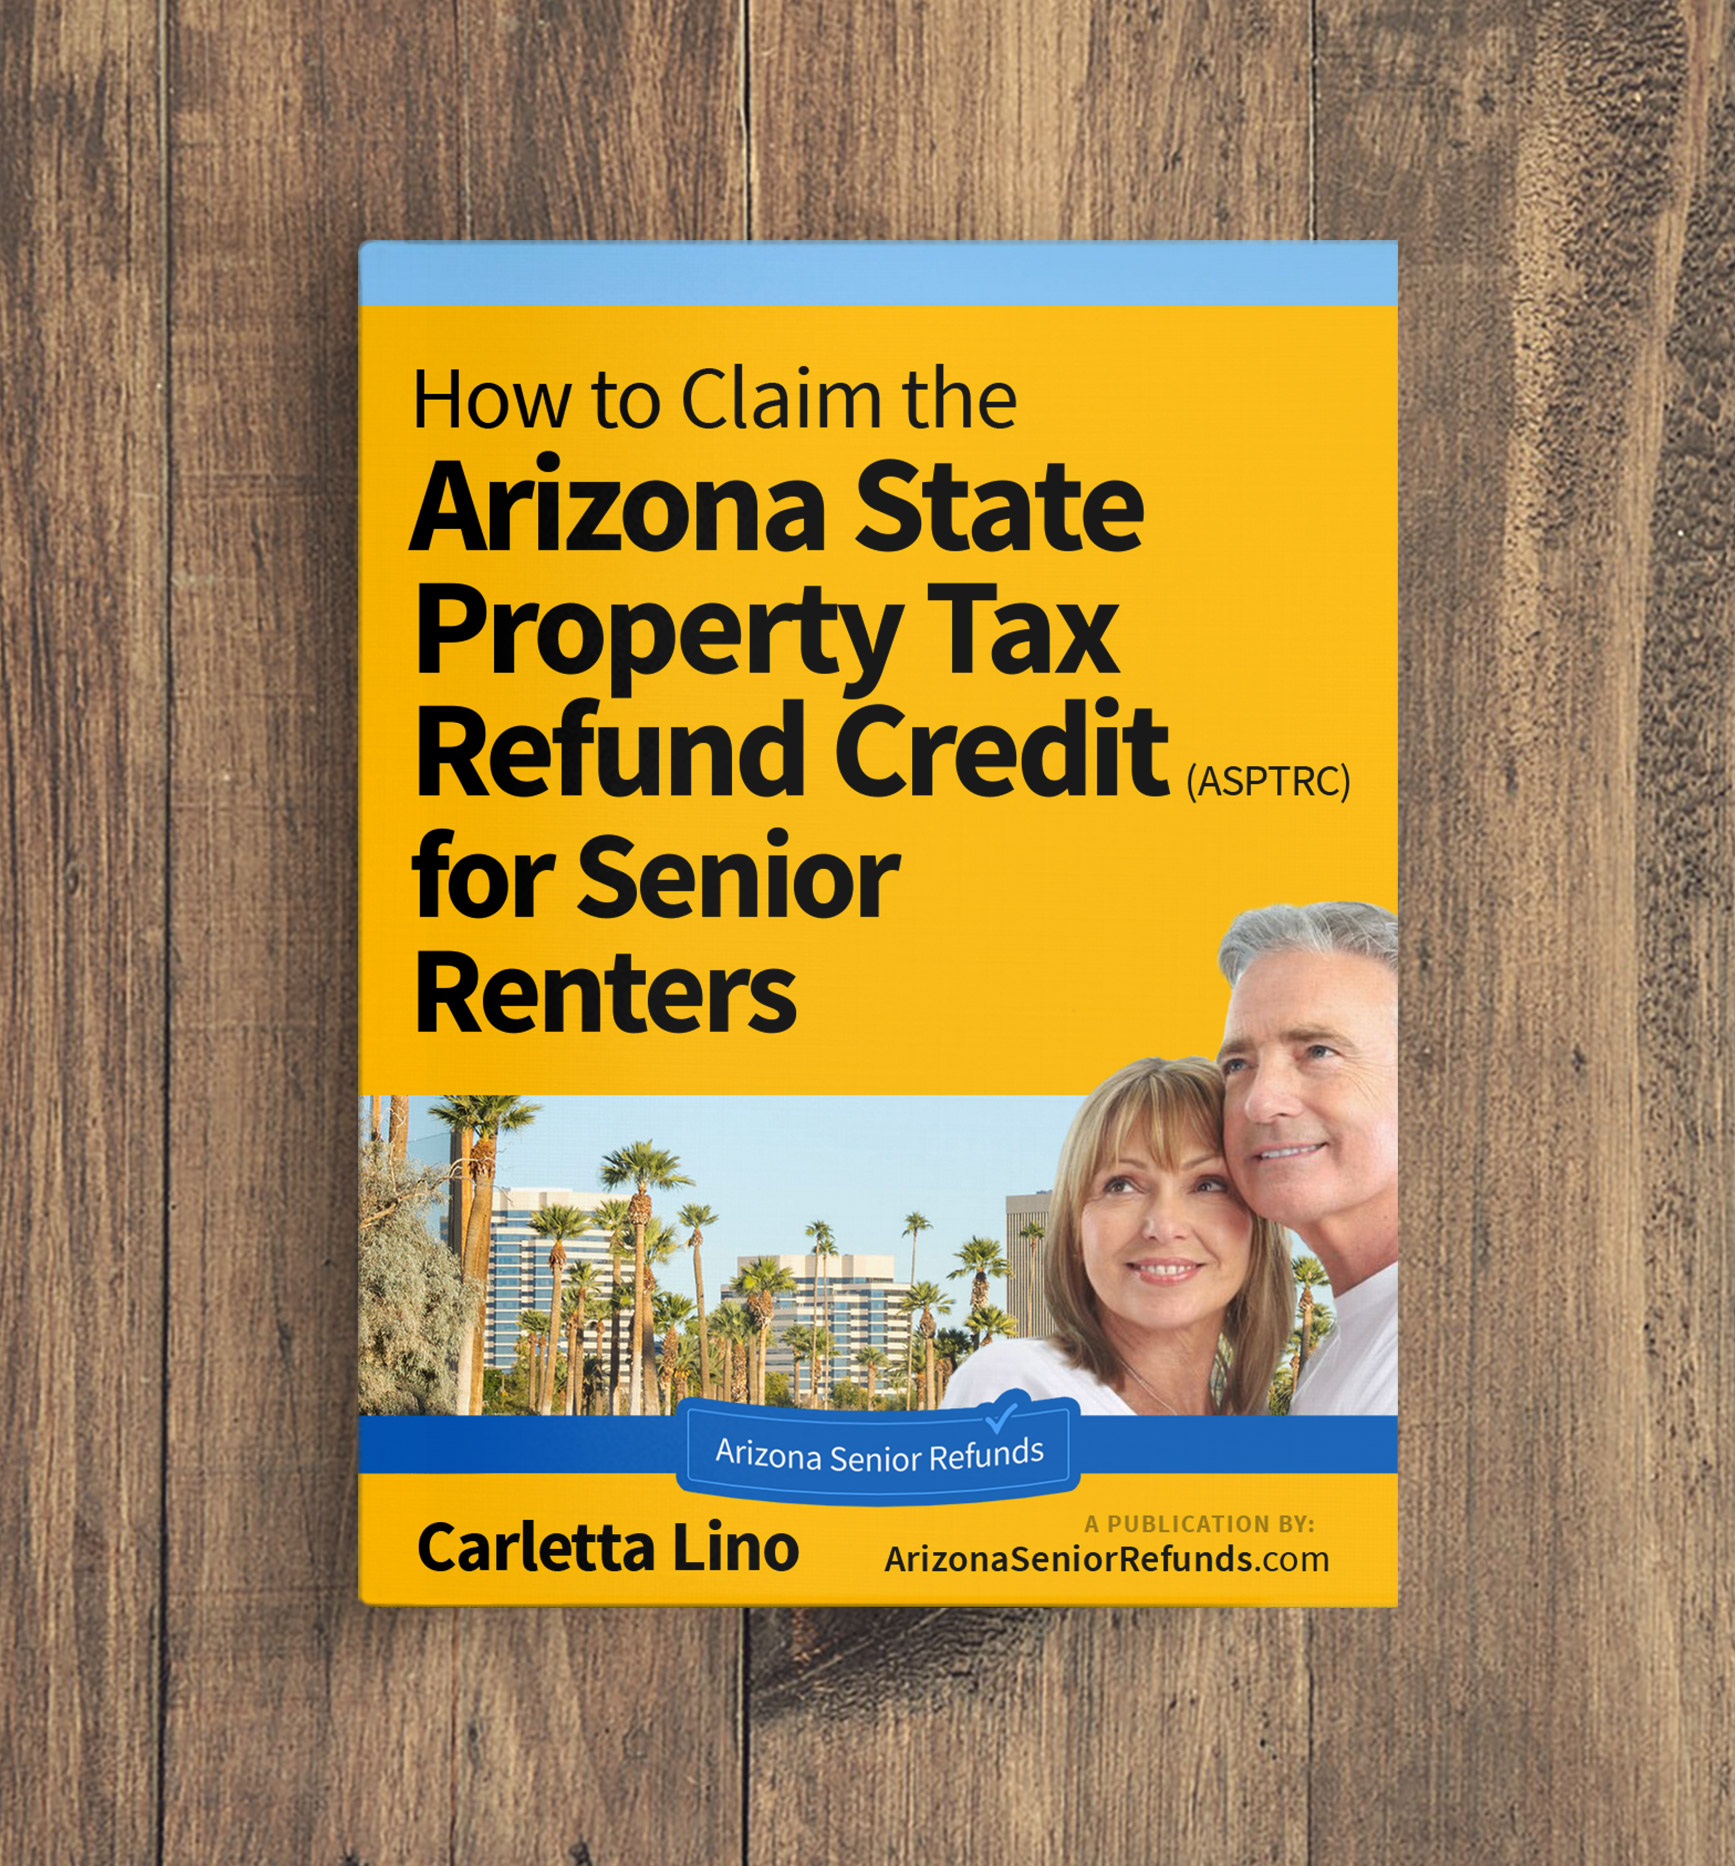 How to Claim the Arizona State Property Tax Refund Credit by Carletta Lino